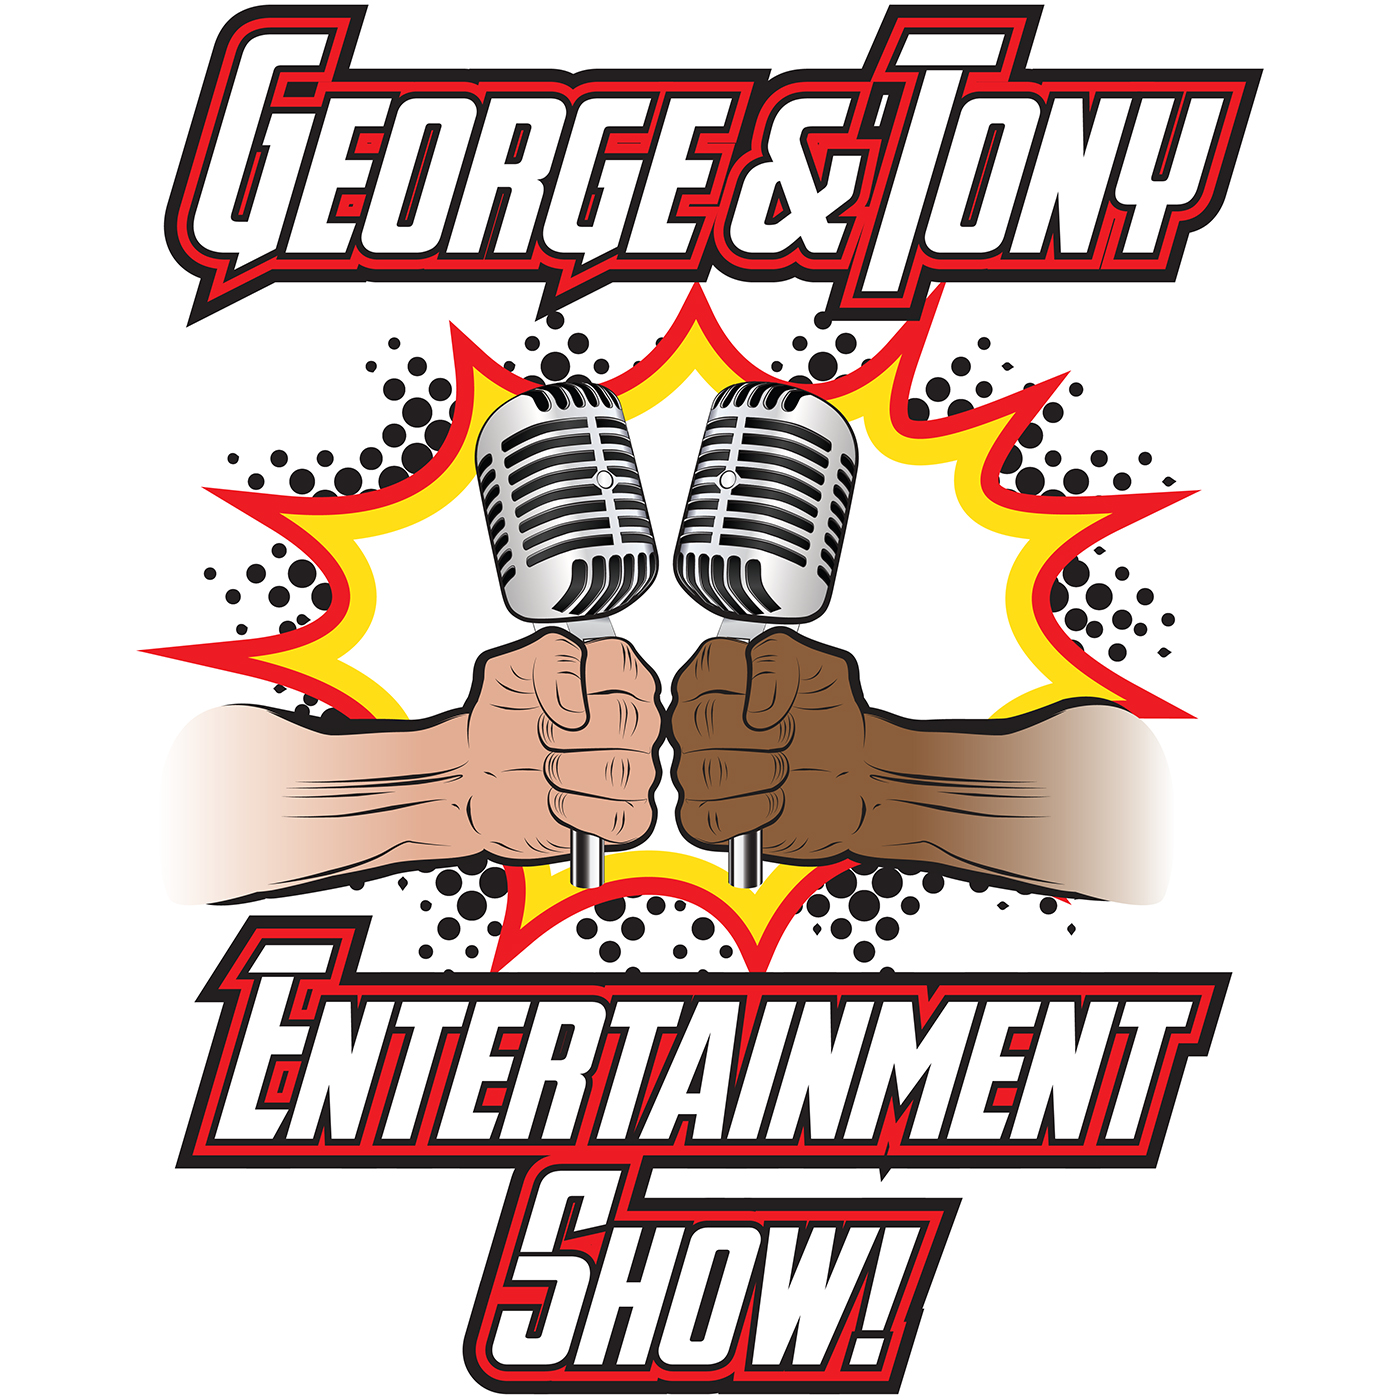 George and Tony Entertainment Show #2